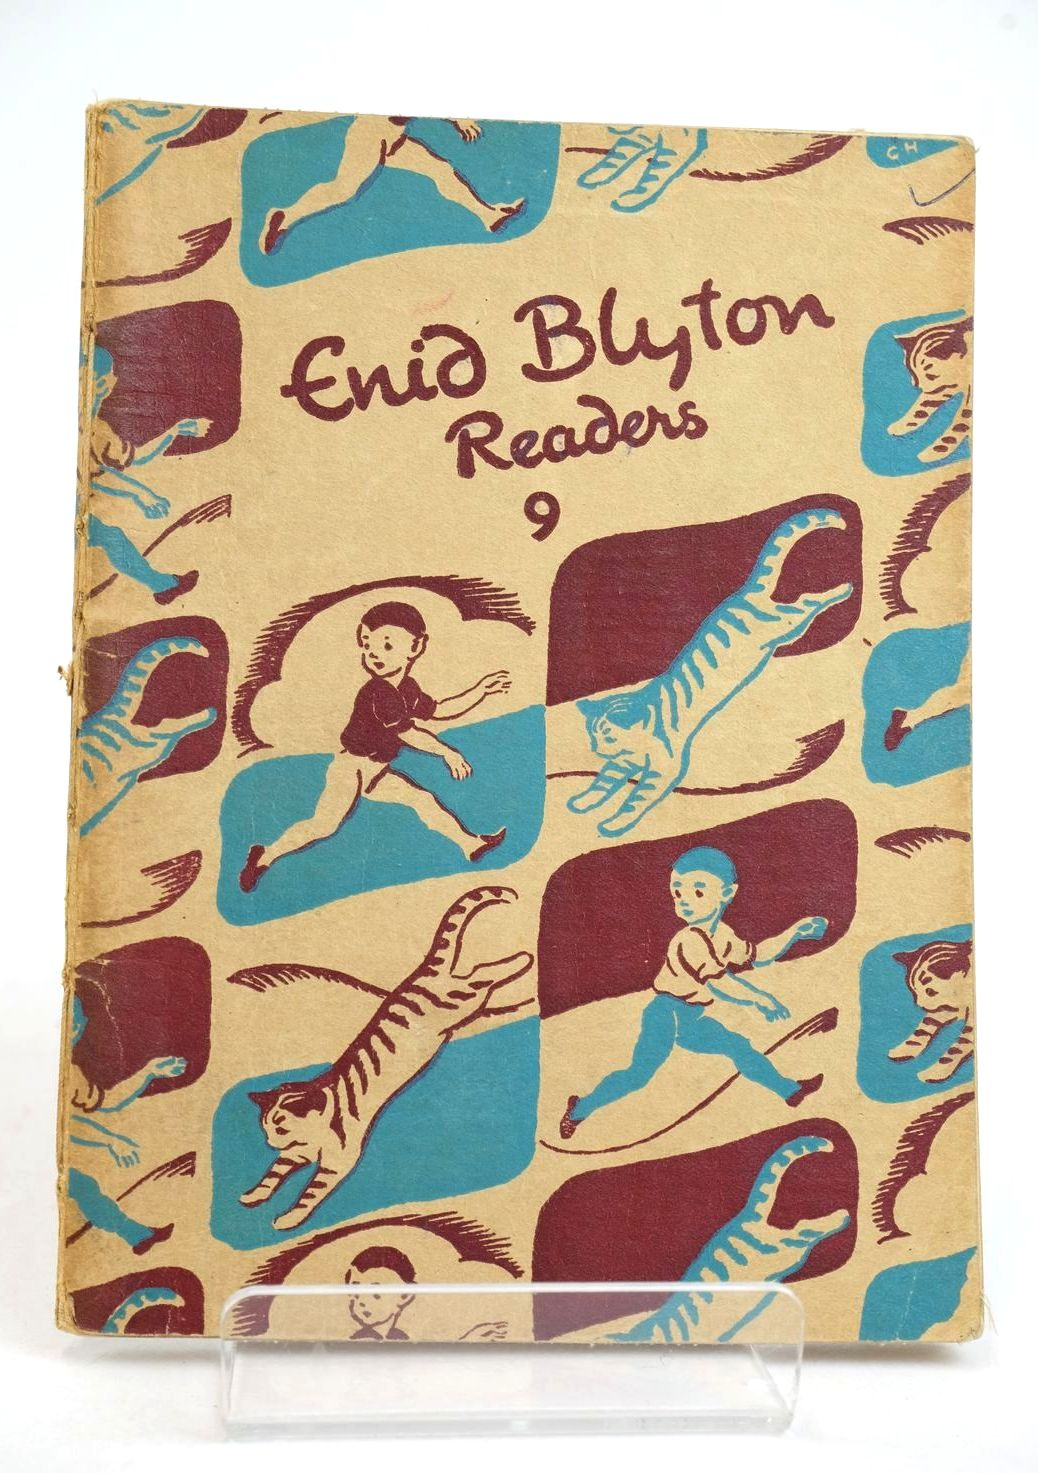 Photo of ENID BLYTON READERS 9 written by Blyton, Enid illustrated by Soper, Eileen published by Macmillan & Co. Ltd. (STOCK CODE: 1318996)  for sale by Stella & Rose's Books